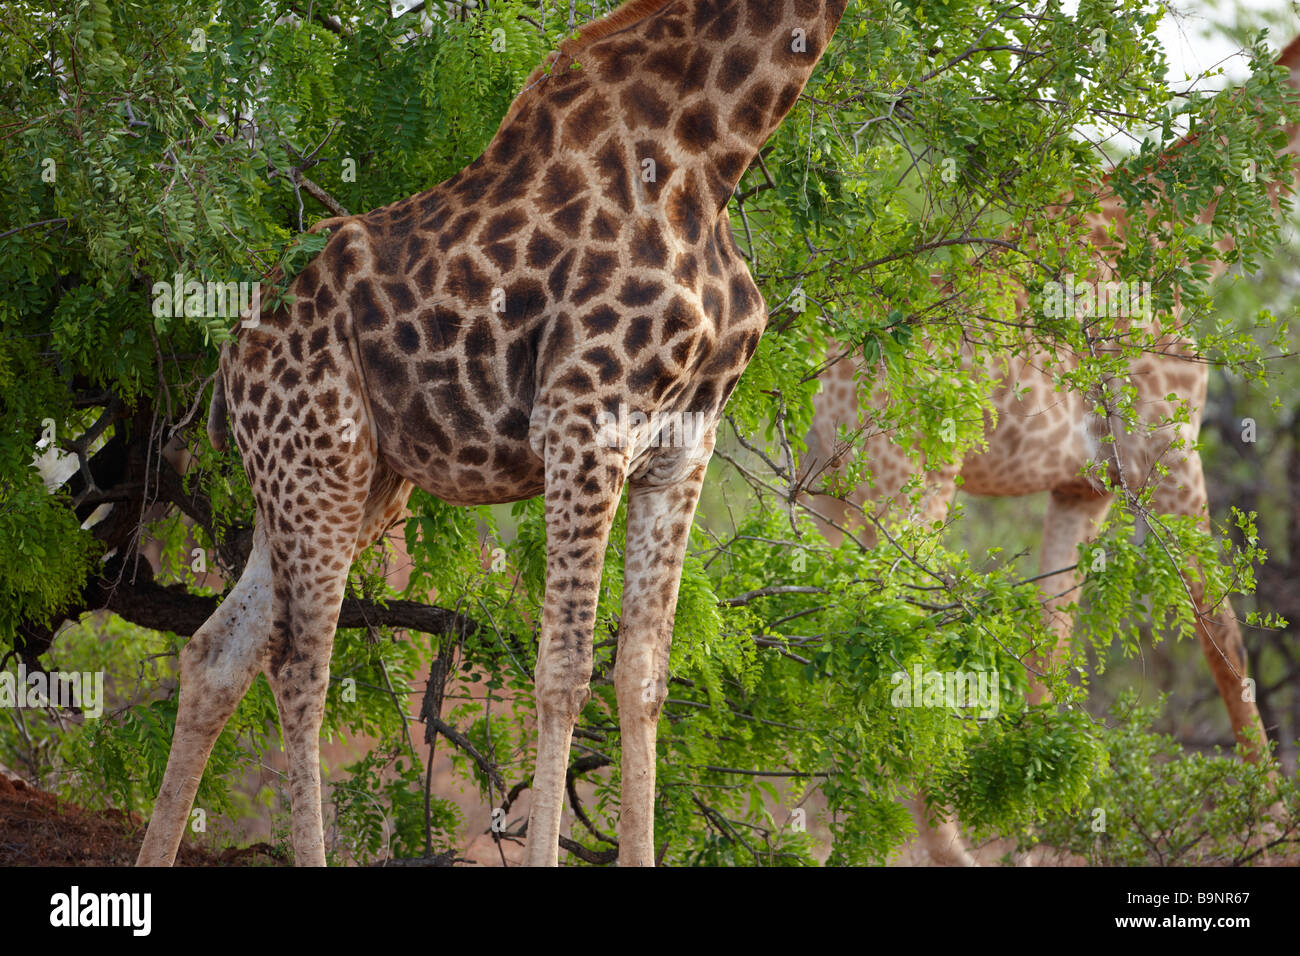 two giraffes in the bush, Kruger National Park, South Africa - Stock Image